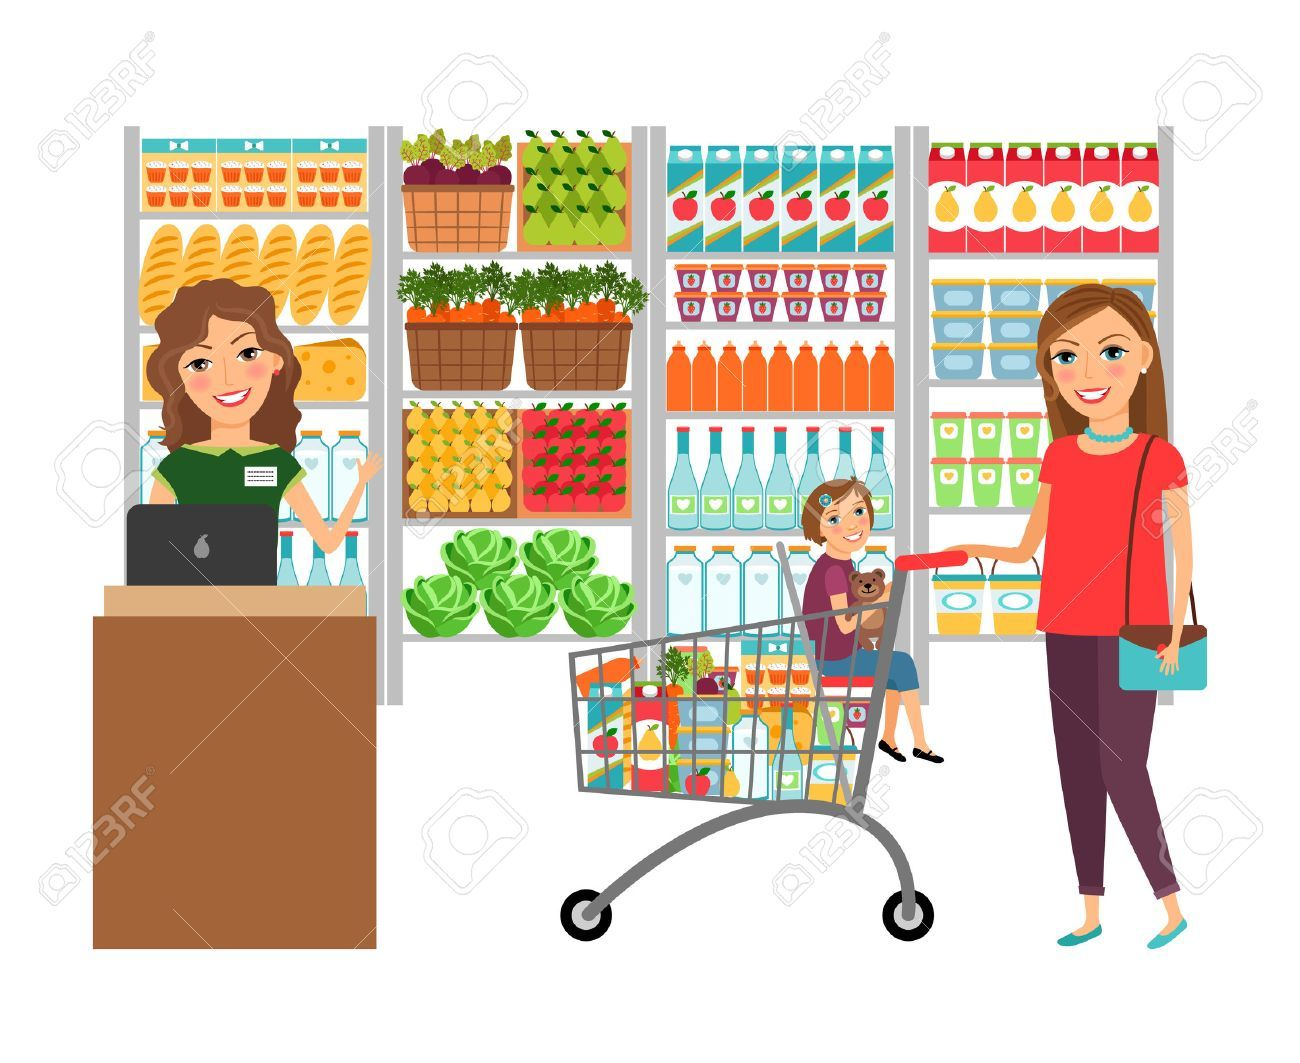 Free grocery store clipart 4 » Clipart Portal.